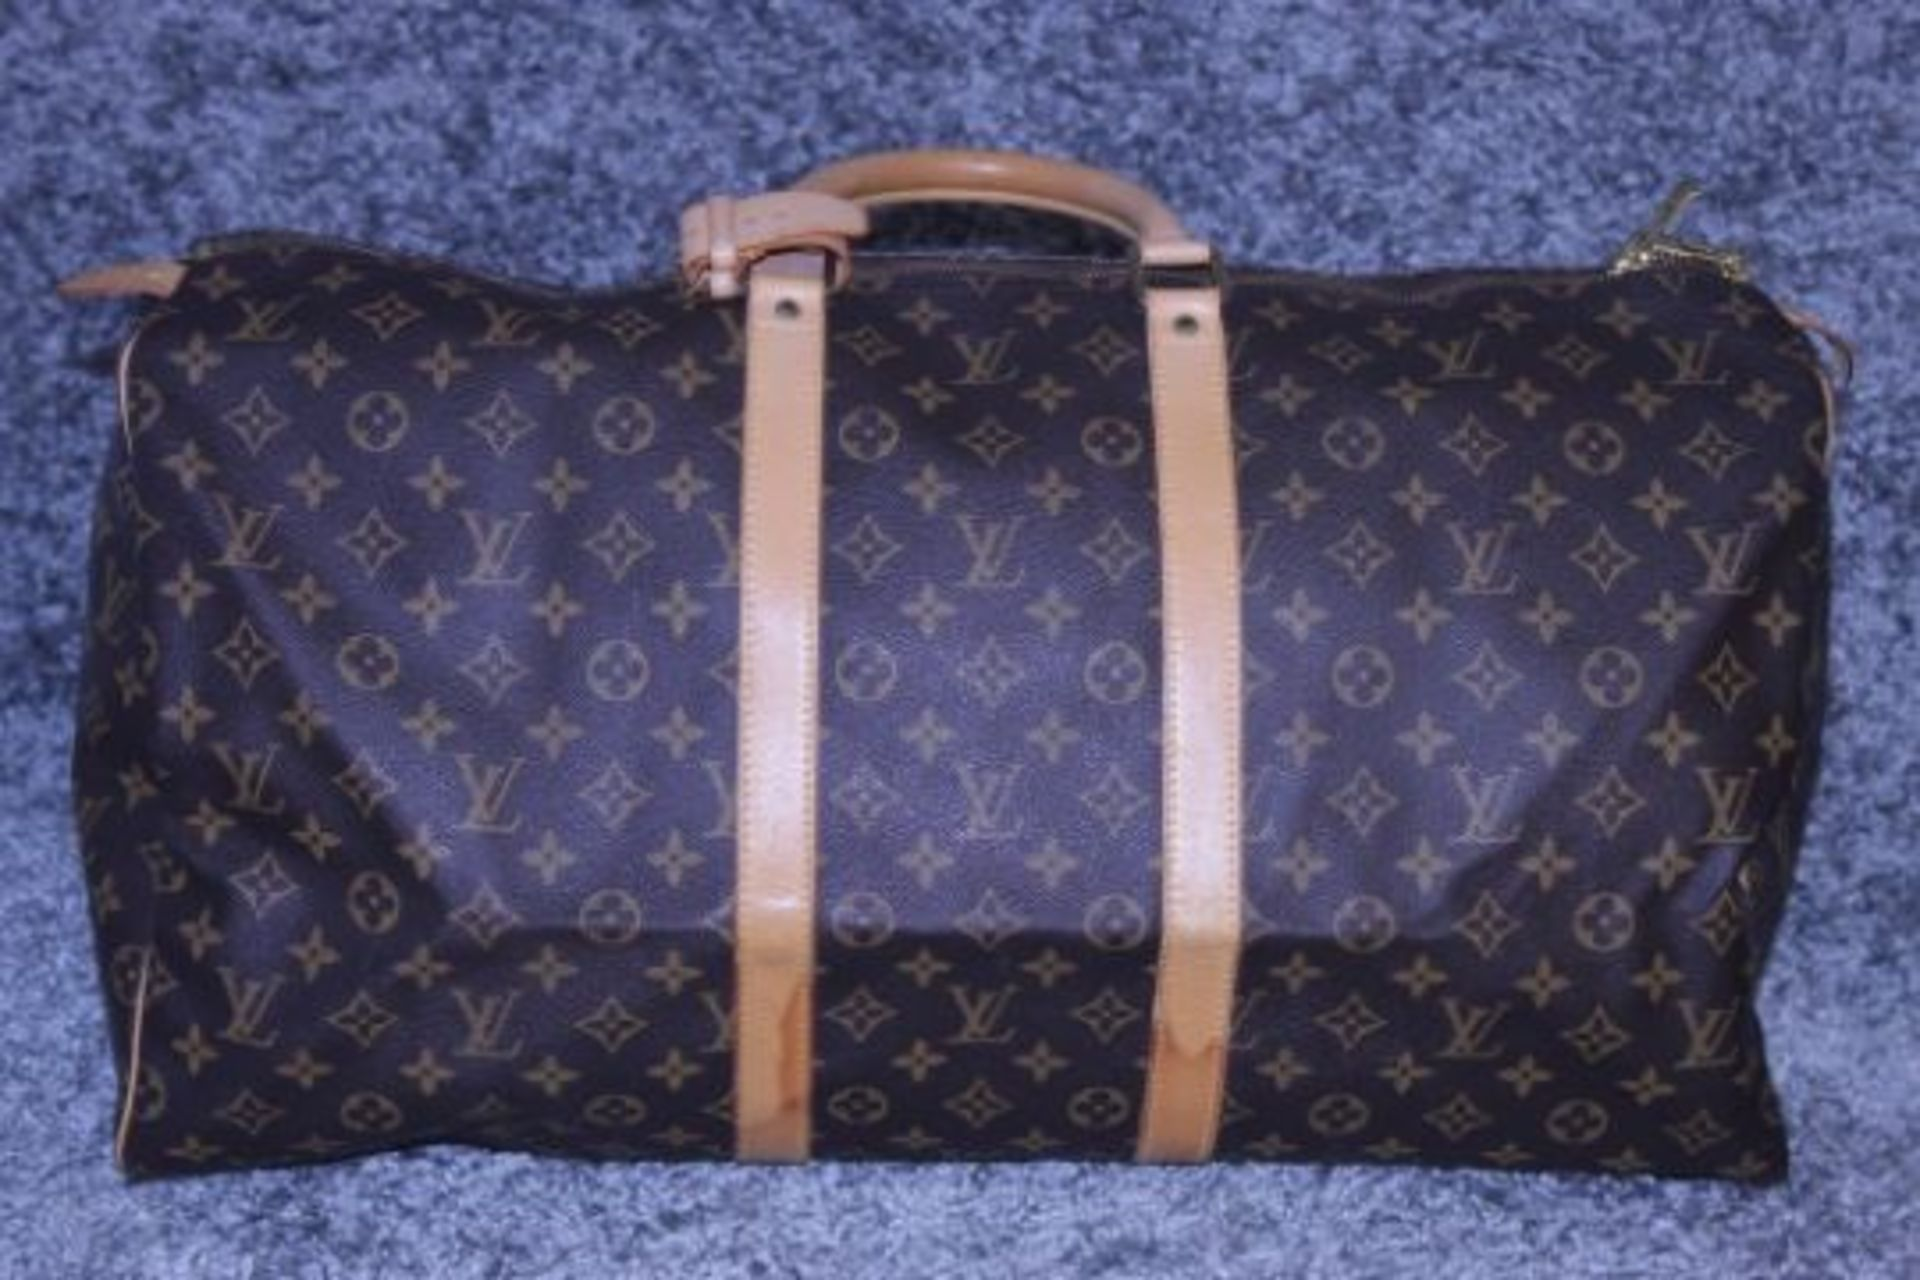 RRP £1,500 Louis Vuitton Keepall 55 Travel Bag, Brown Monogram Coated Canvas, 55x28x25cm (Production - Image 2 of 2